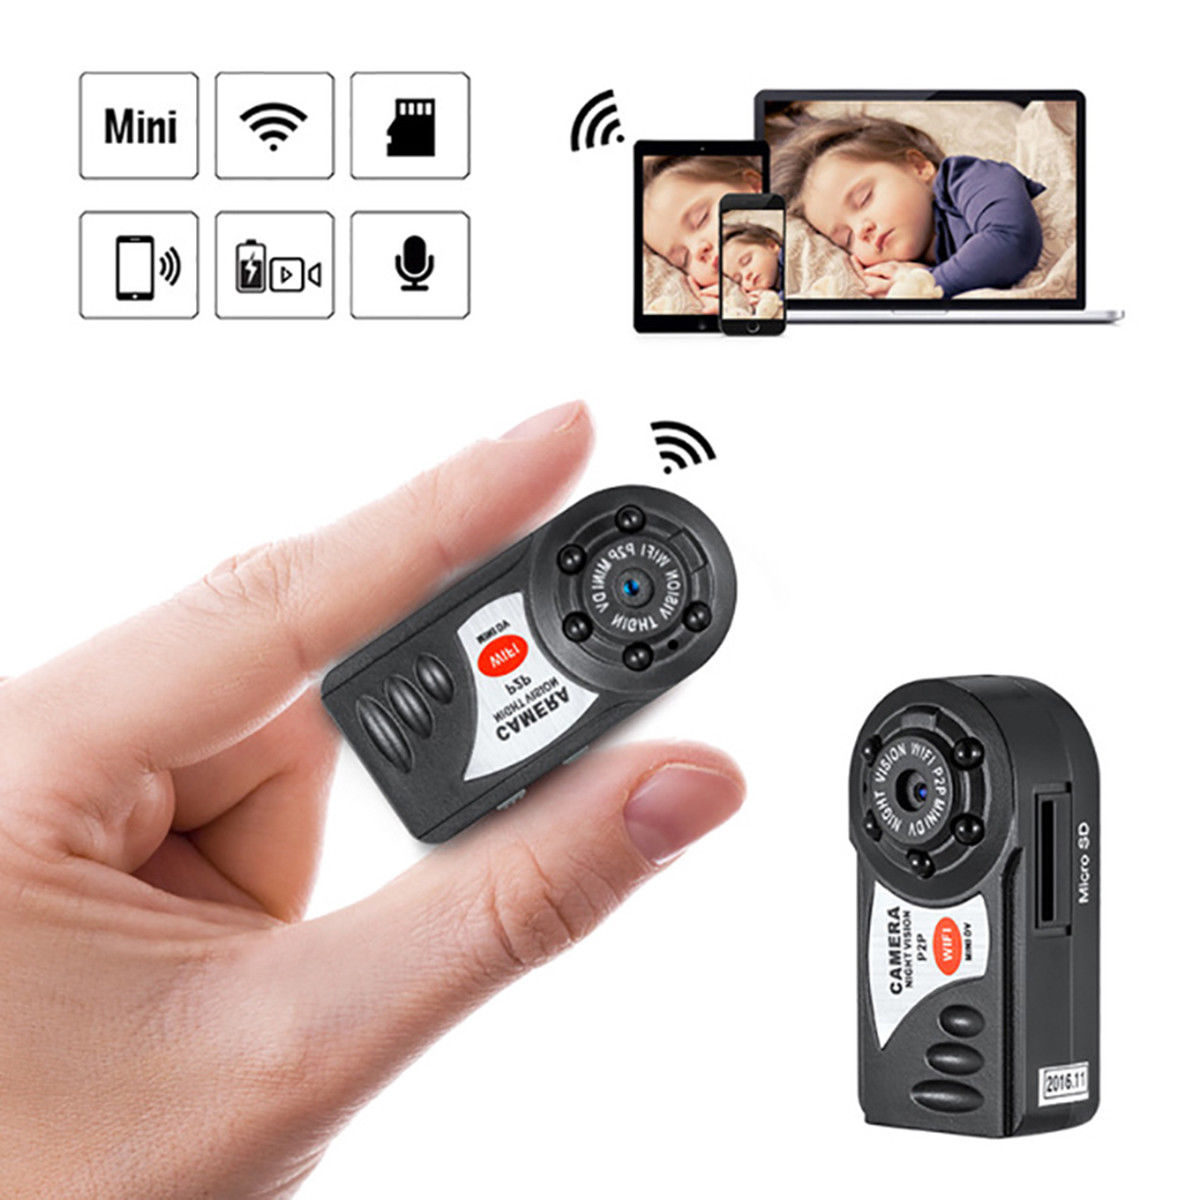 4G Card+Mini WIFI P2P Wireless Micro Camera Q7 DV Car DVR Video Recorder Camcorder4G Card+Mini WIFI P2P Wireless Micro Camera Q7 DV Car DVR Video Recorder Camcorder